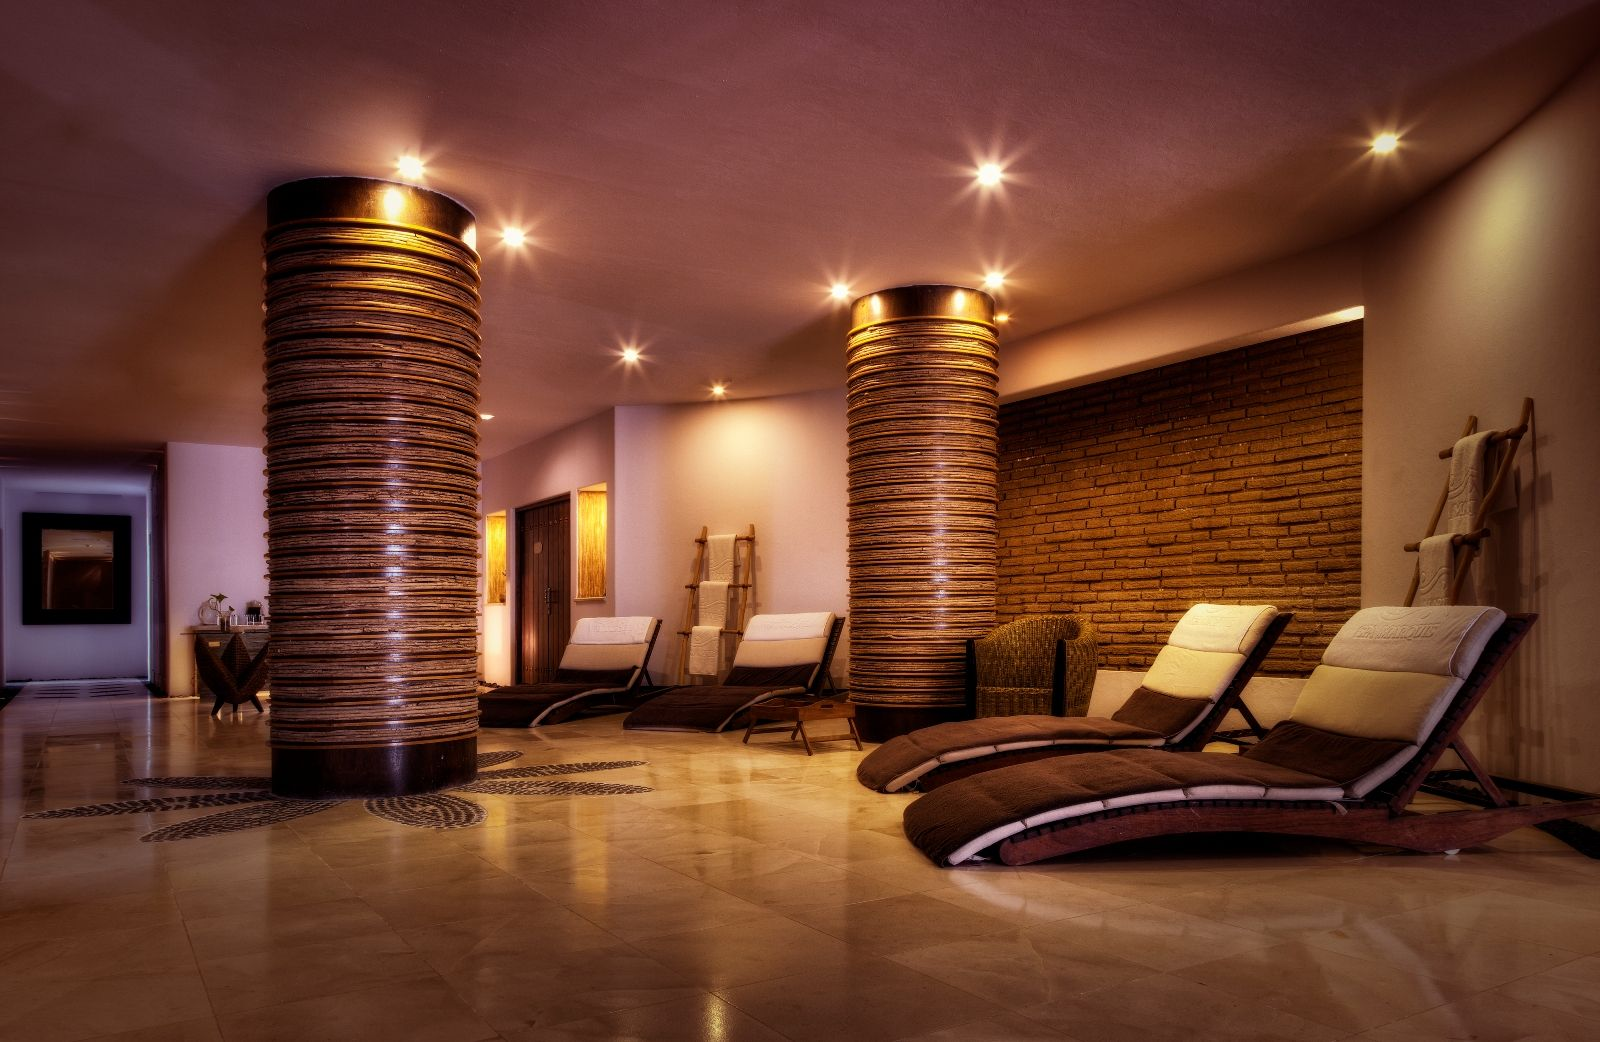 Indoor relaxation area with loungers